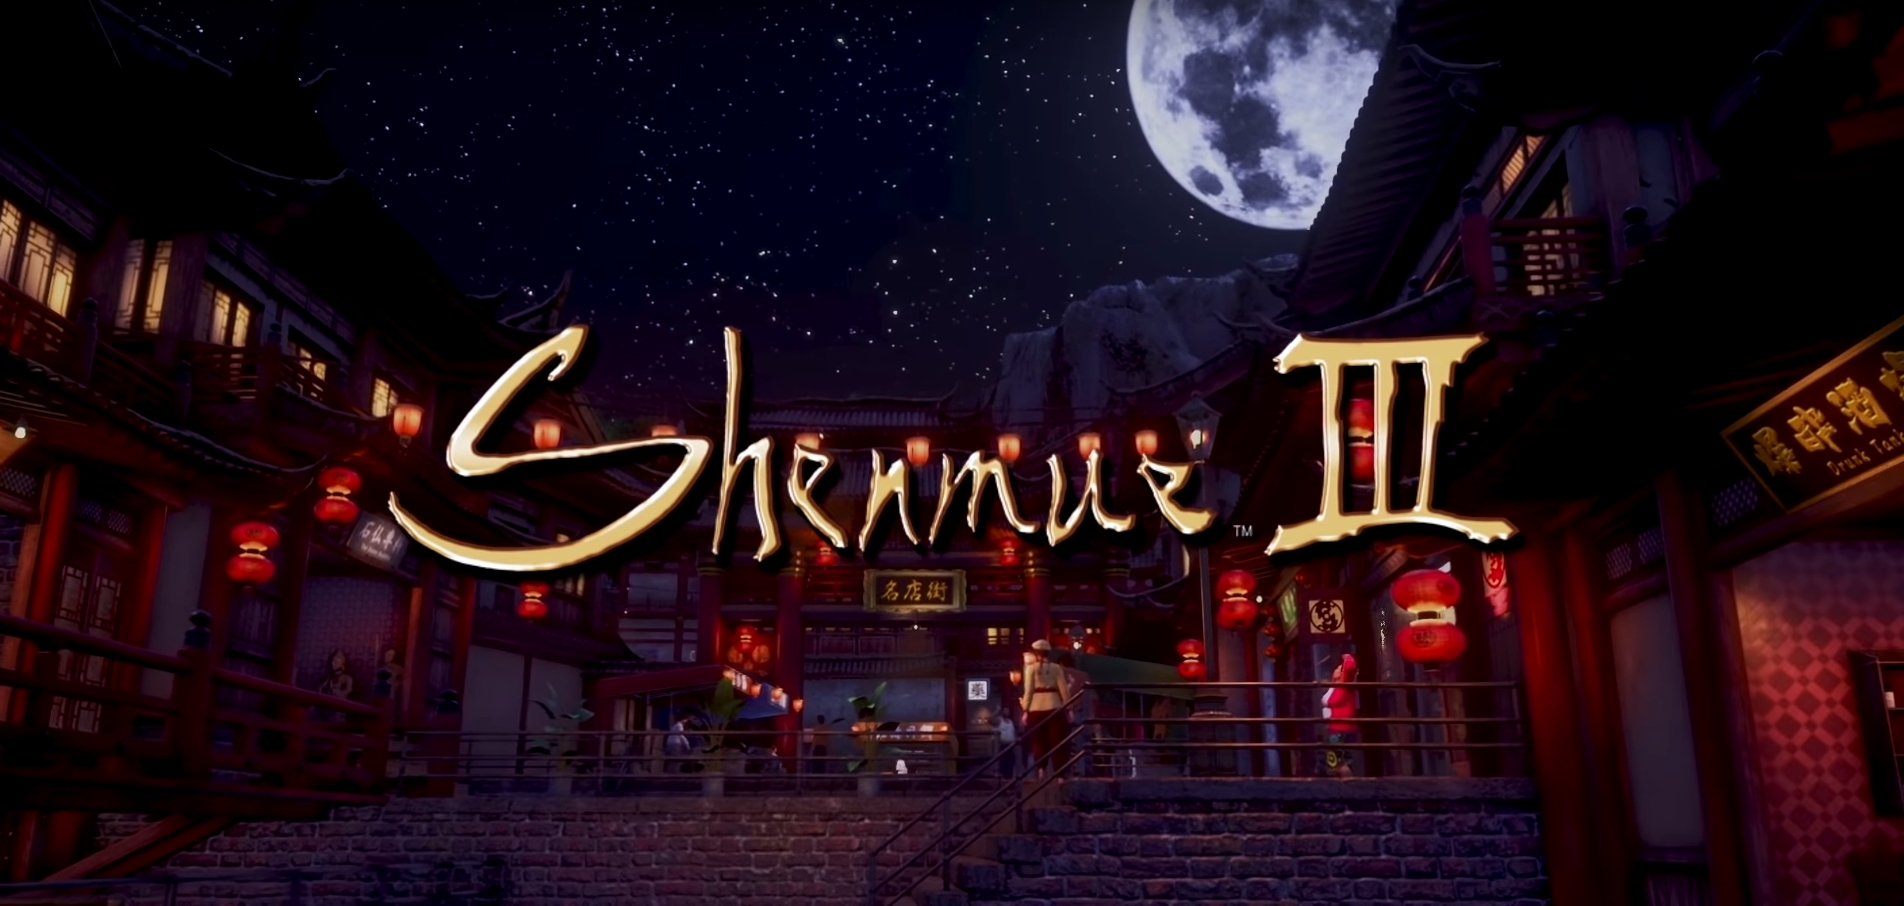 Epic Games Offers Refunds to Shenmue III Backers Over Steam